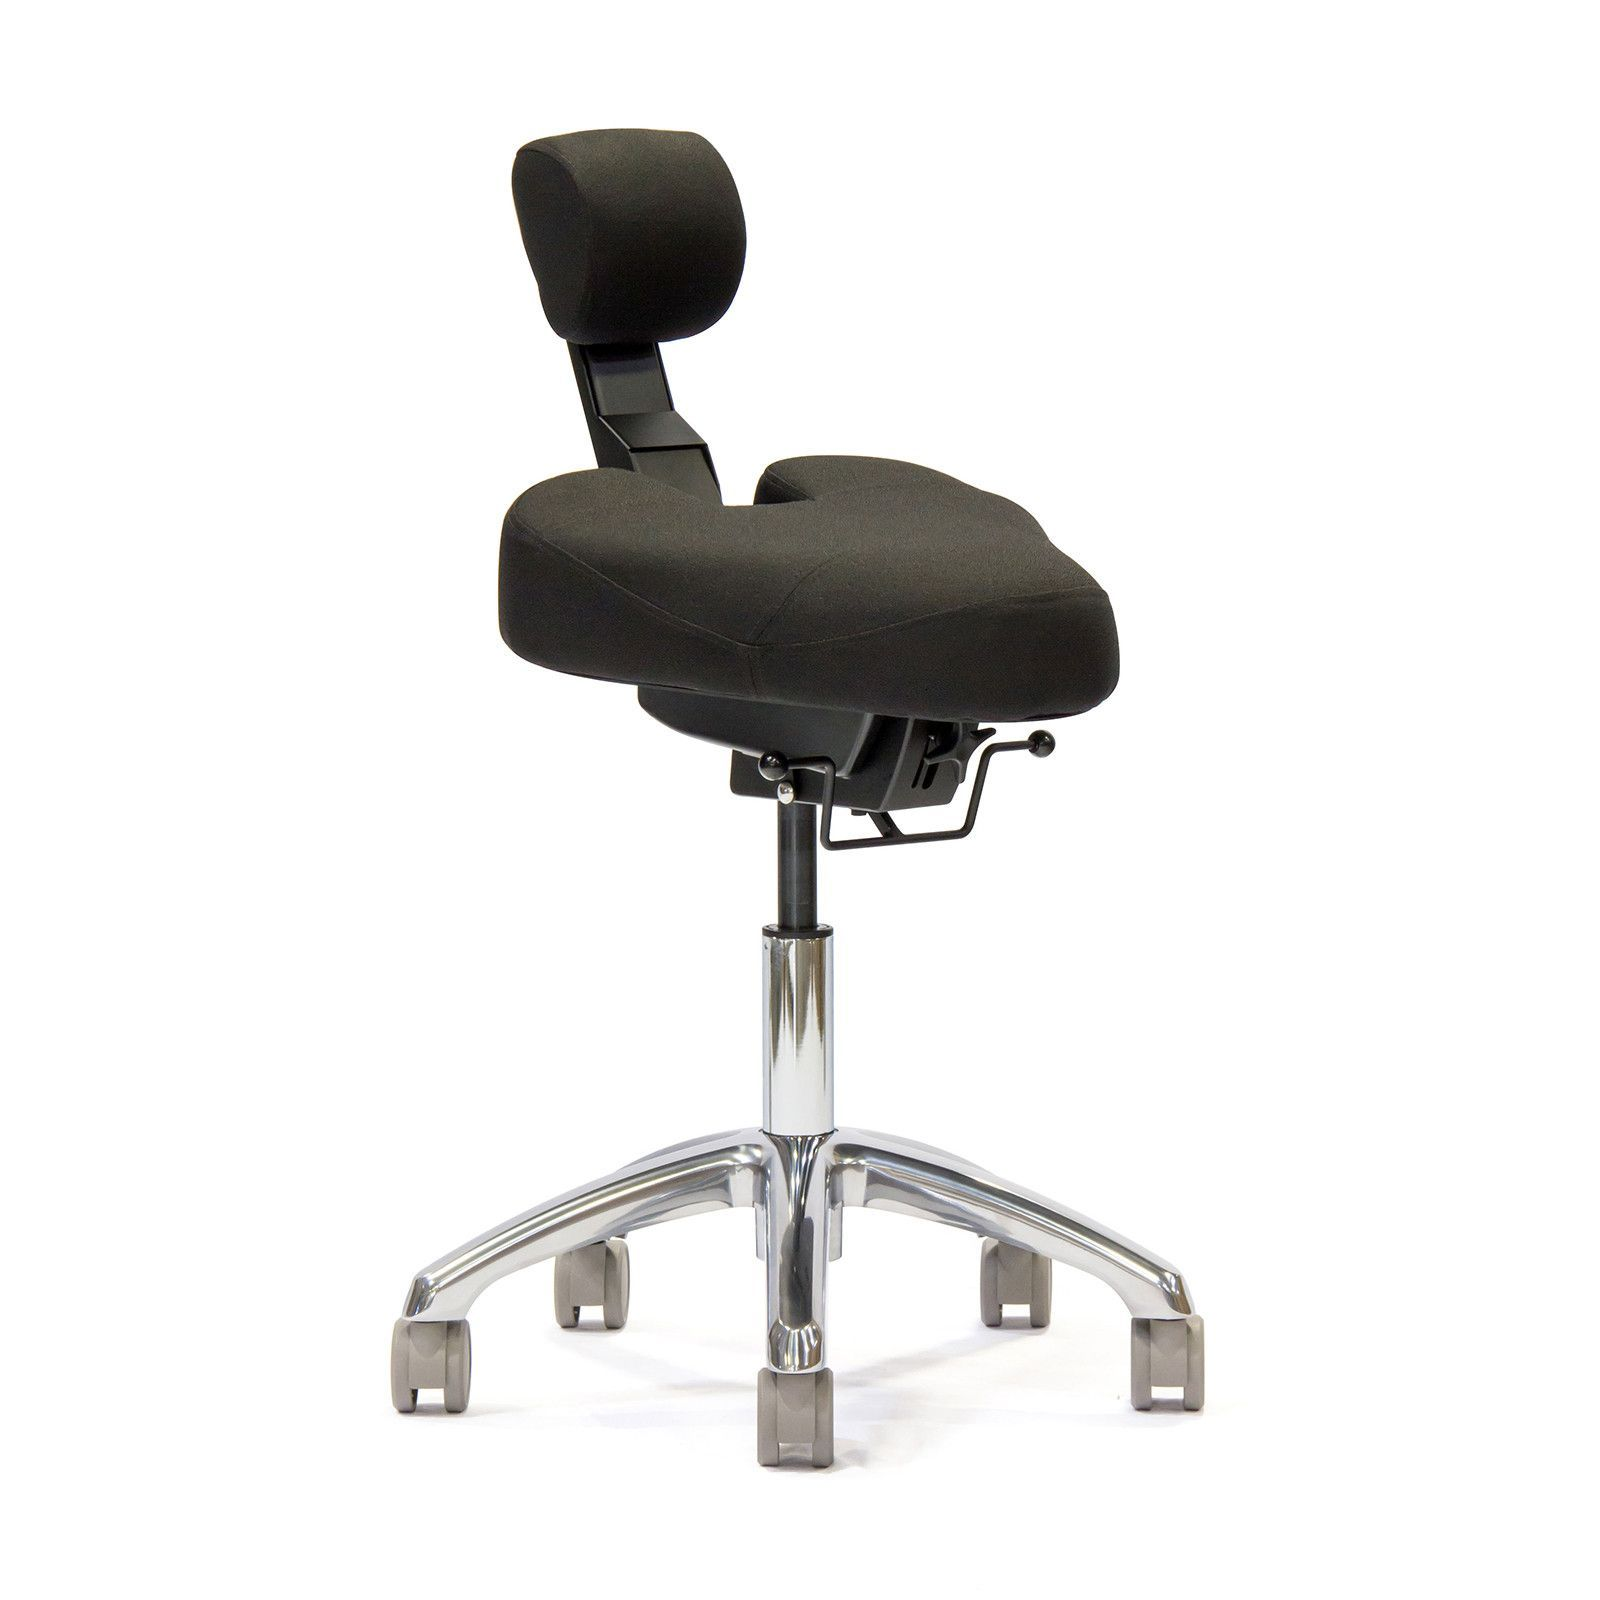 ergonomic chair betterposture saddle chair jobri. Crown Seating - Dynamic Saddle Ergonomic Chair; ErgoLab E200 Chair Betterposture Jobri L